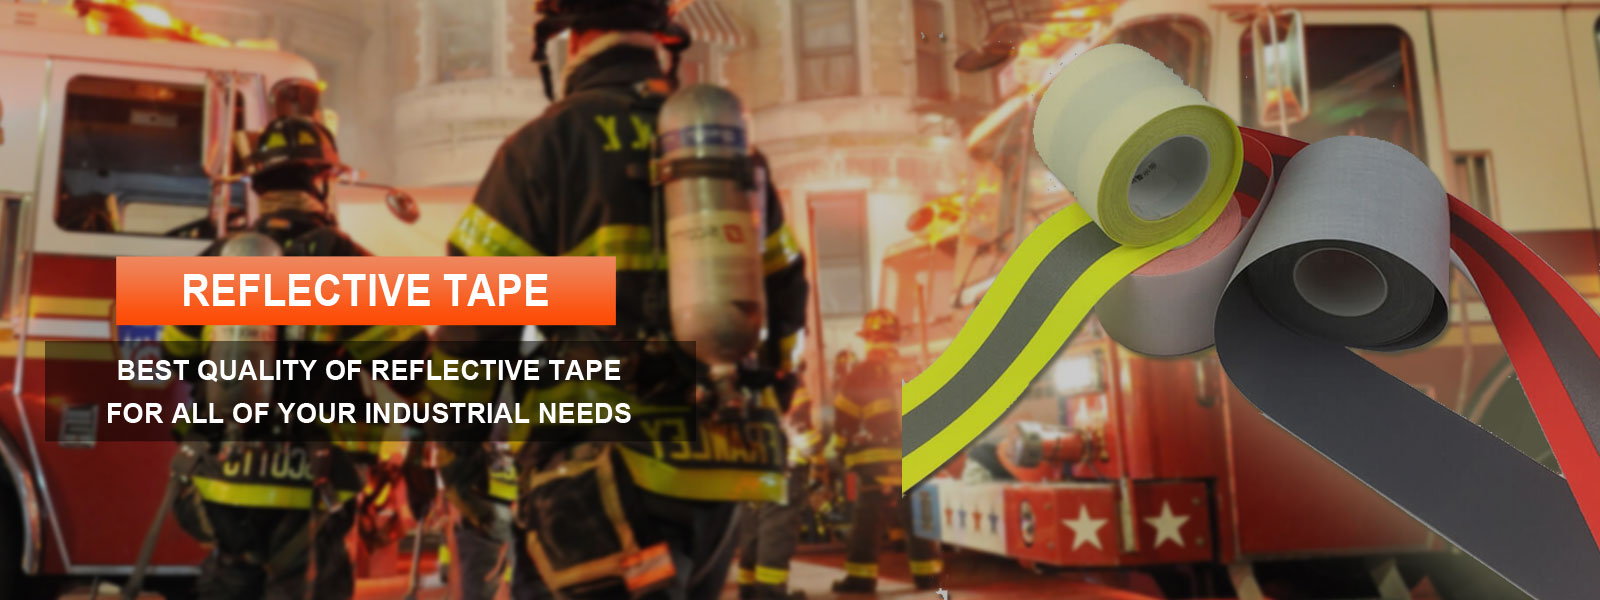 Reflective Tape Manufacturers in Angola